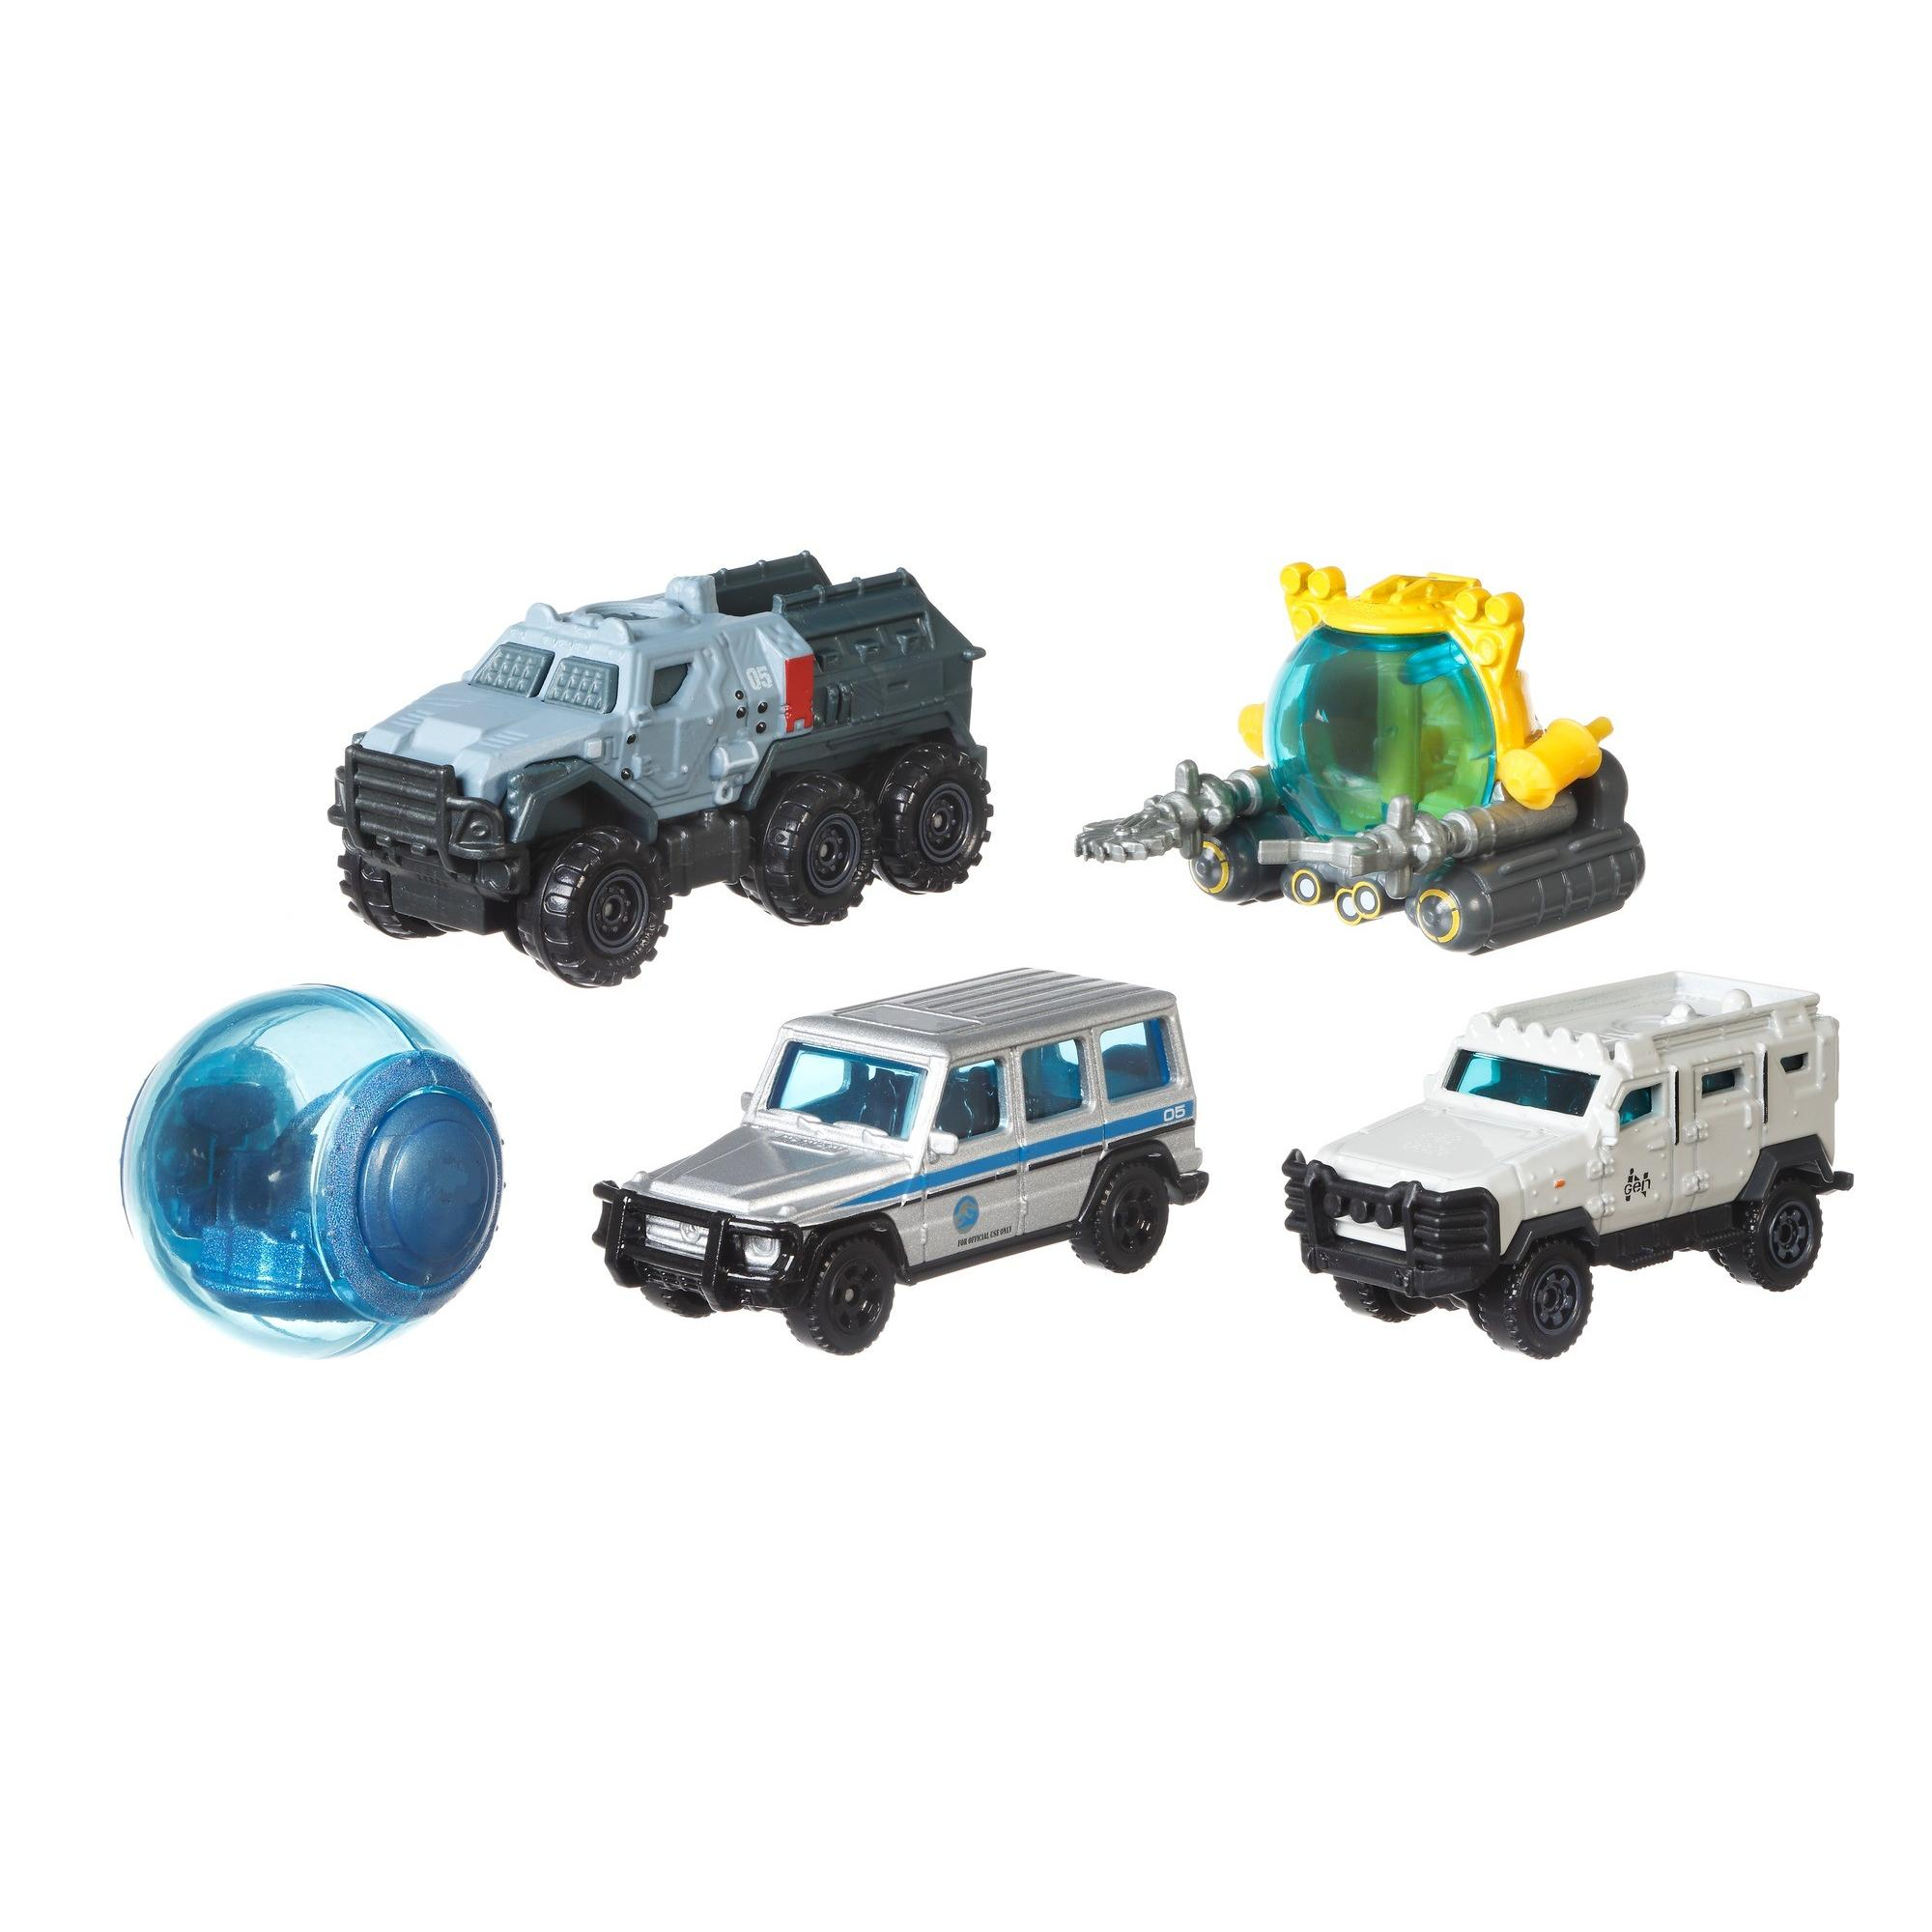 Matchbox Jurassic World Die-Cast 5-Pack (Styles May Vary) by Mattel